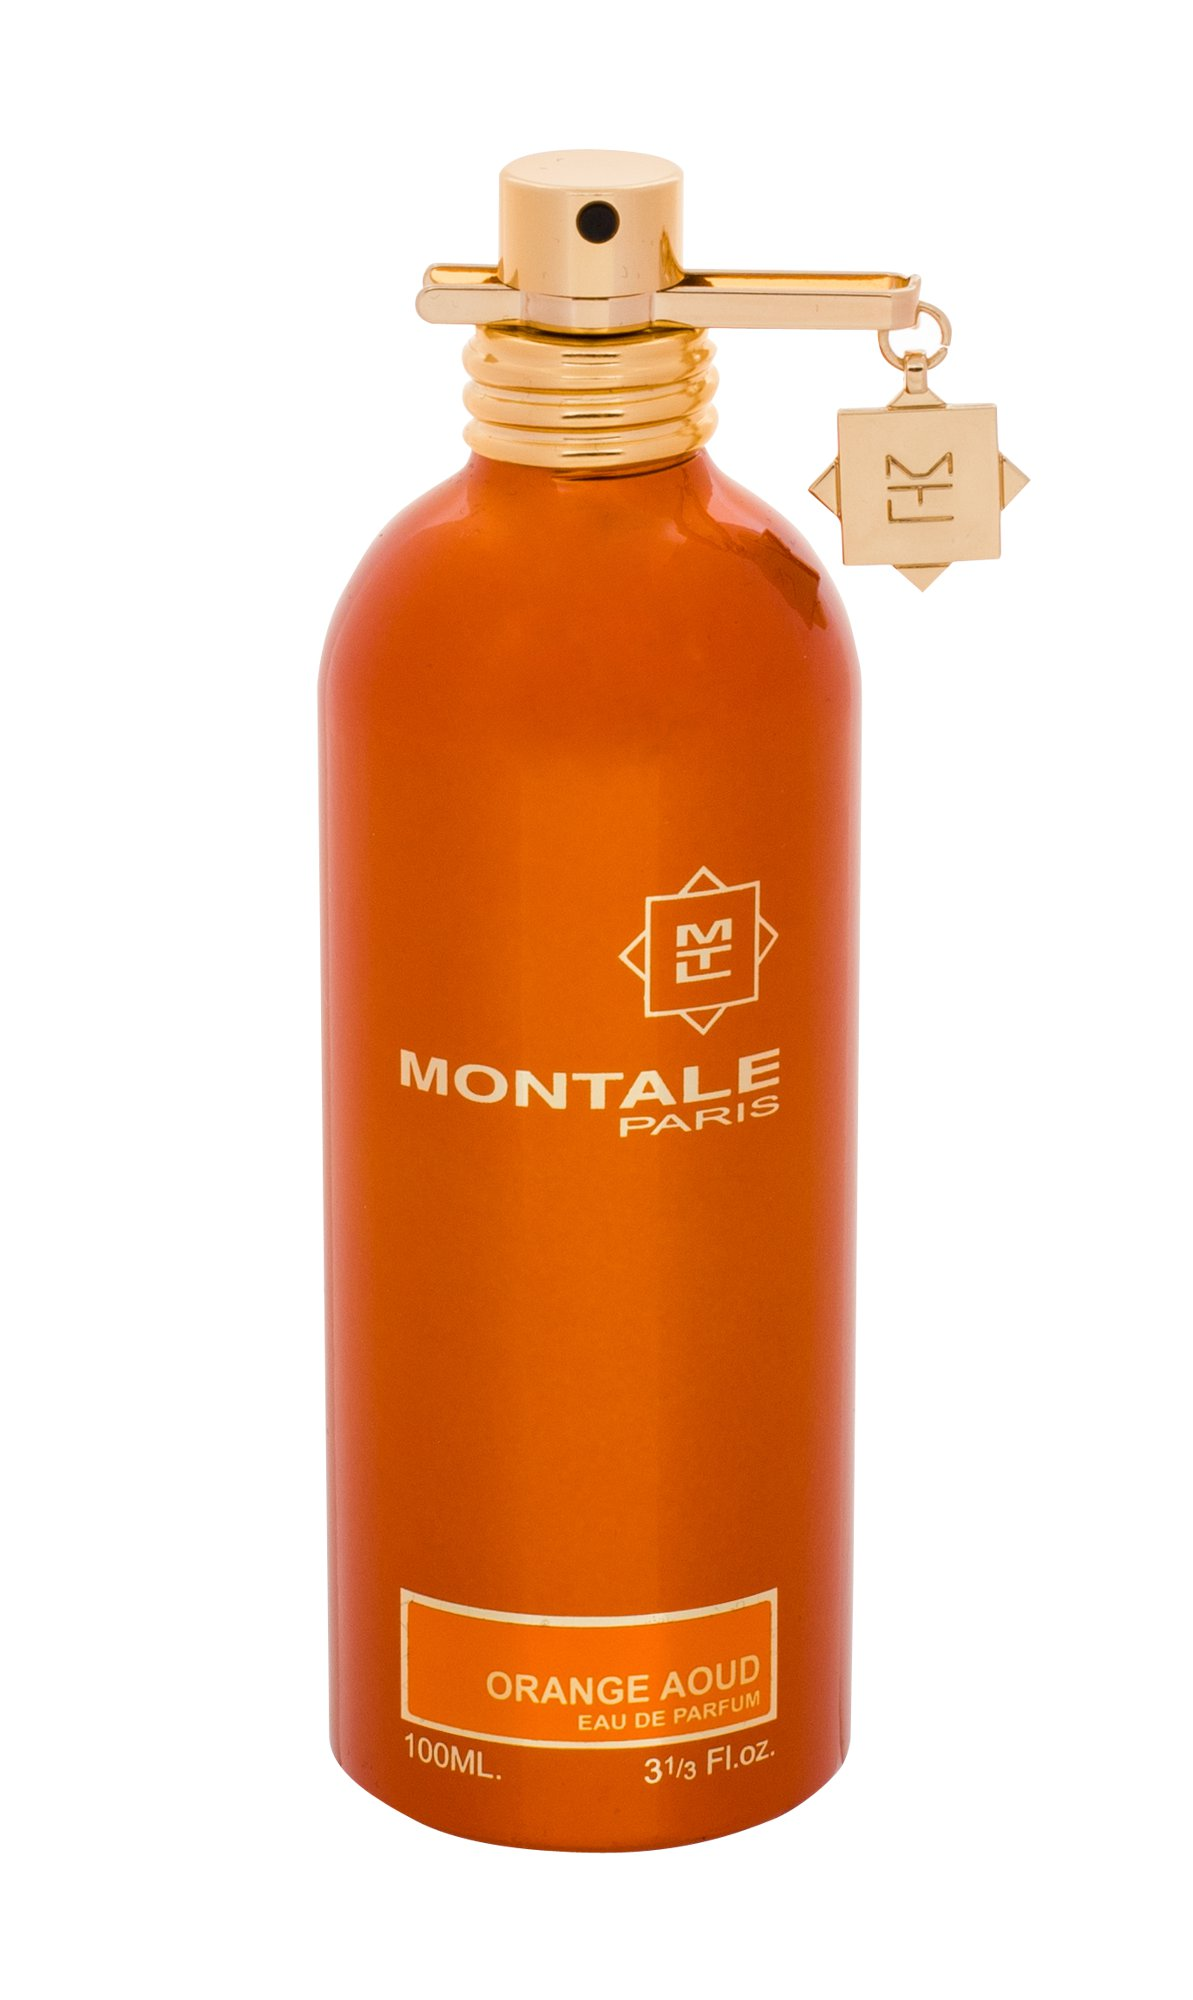 Montale Paris Aoud Orange, edp 100ml